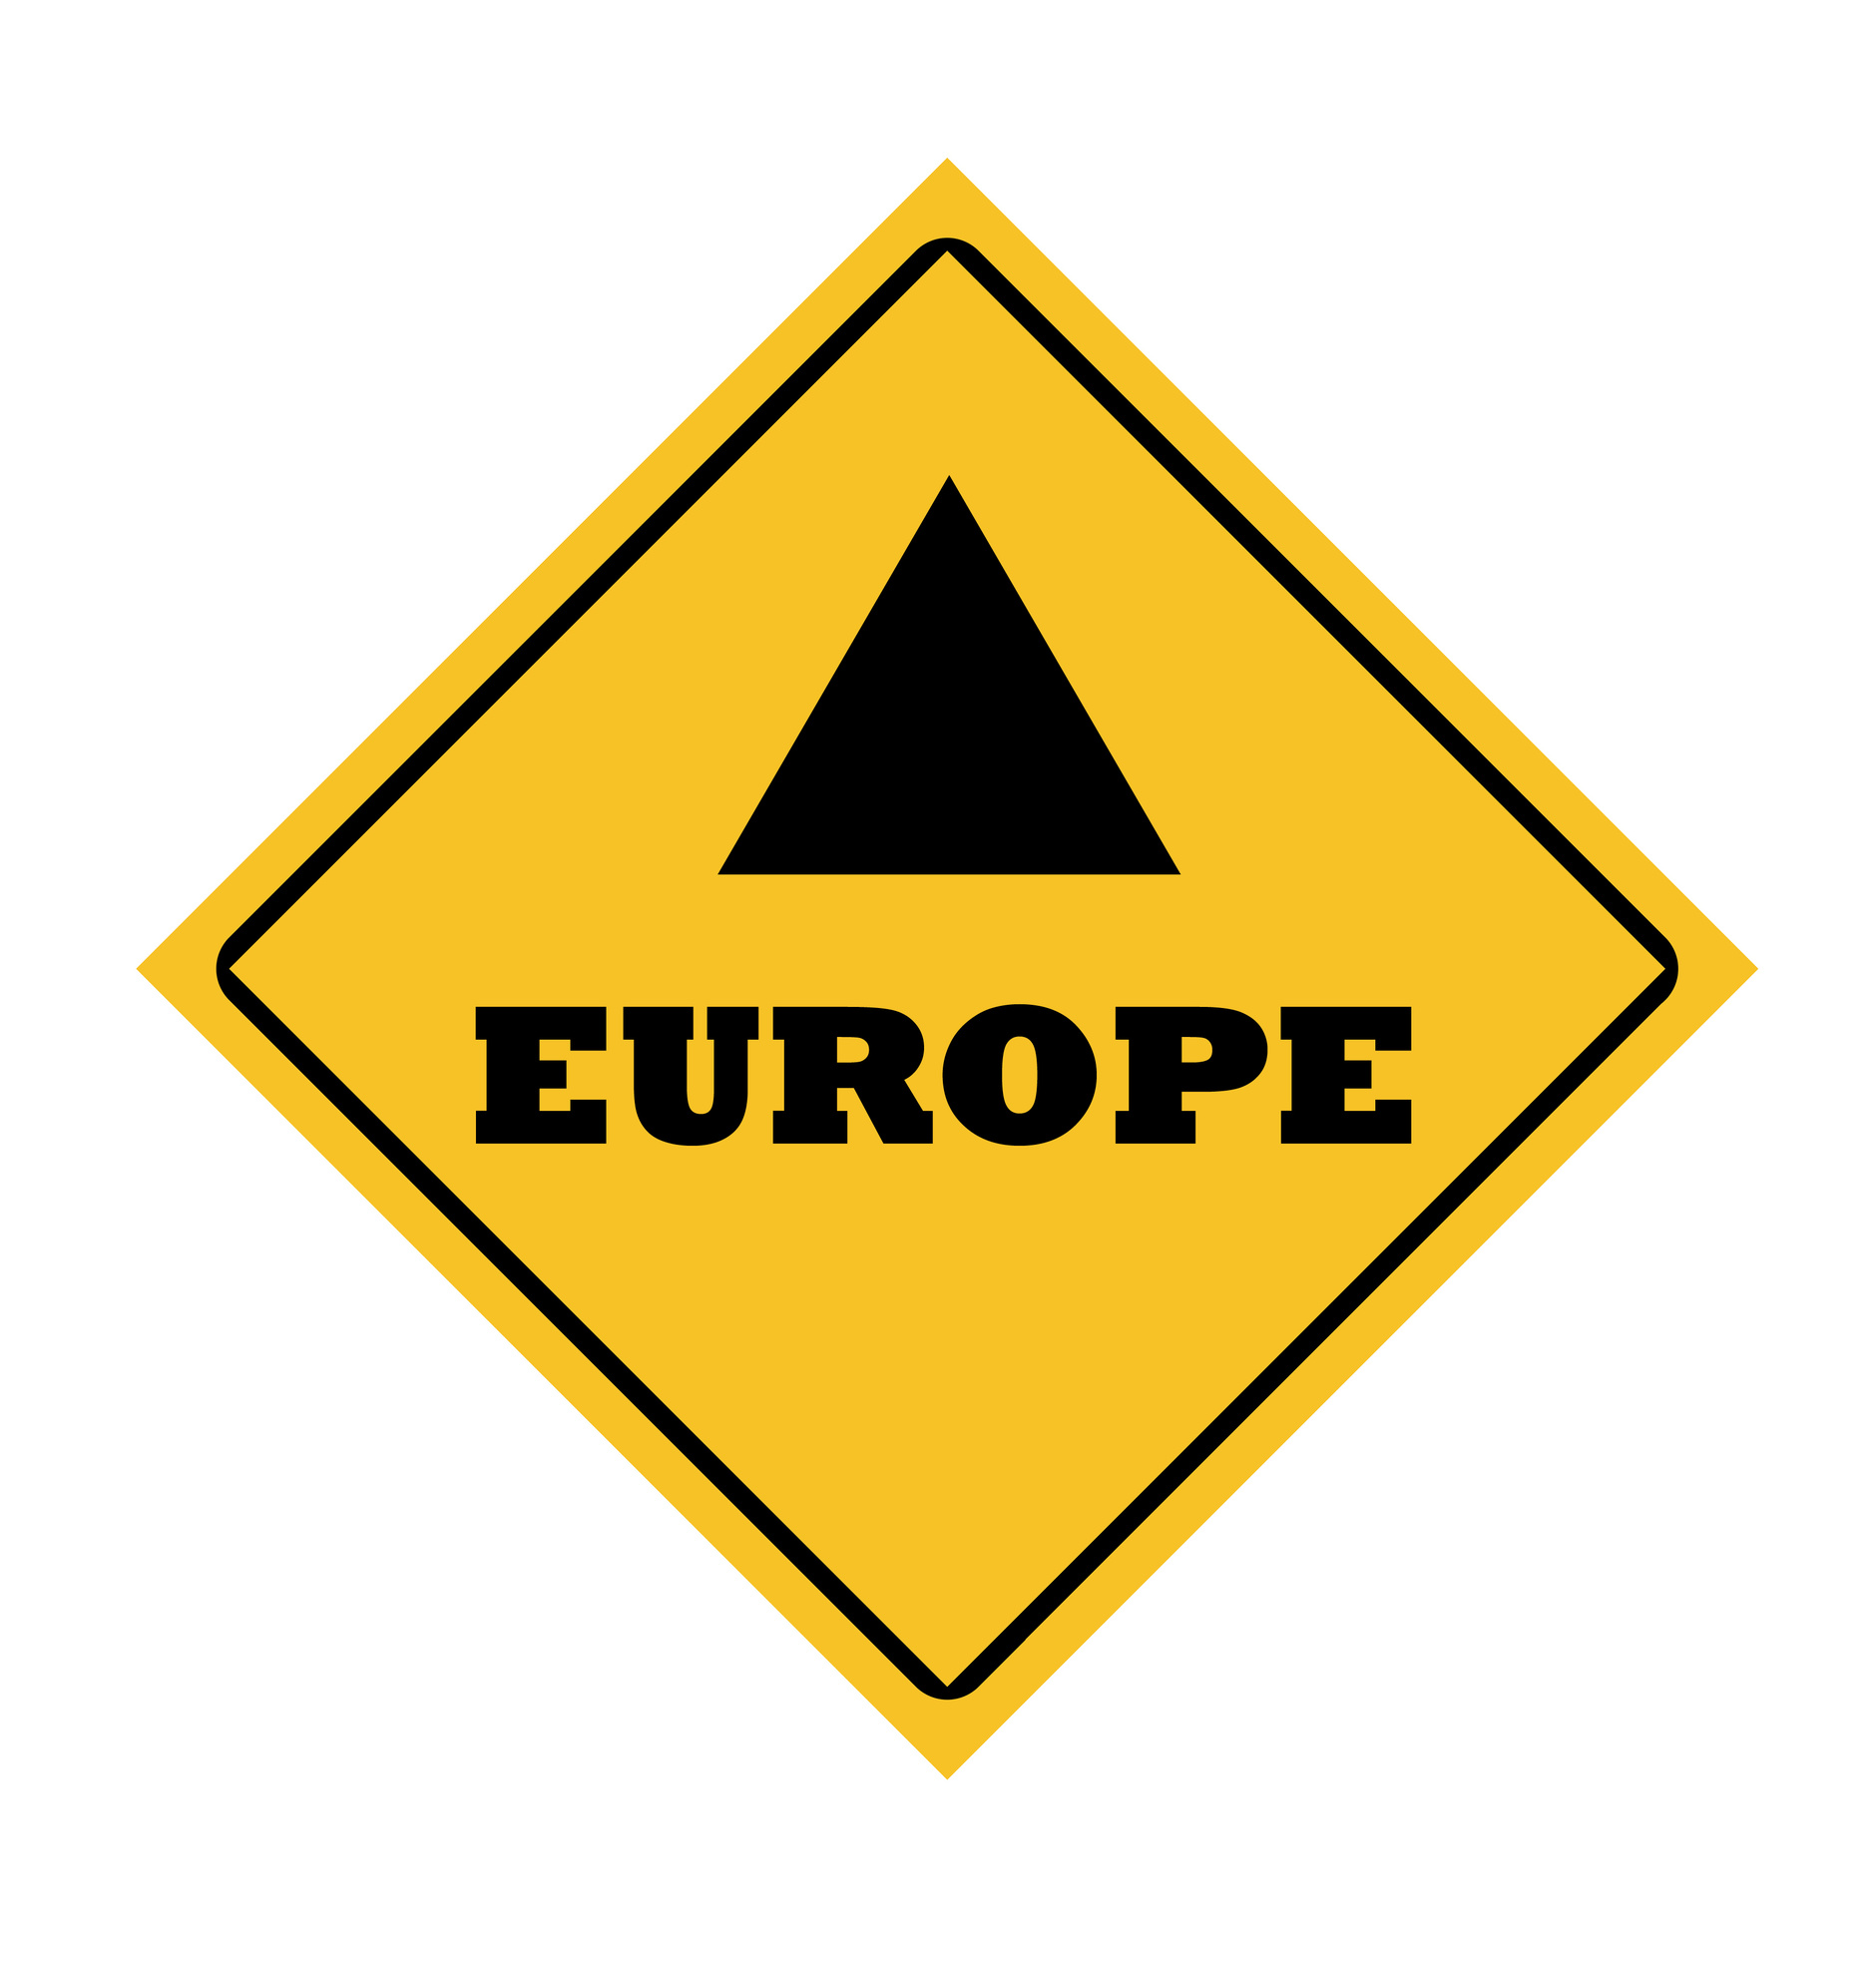 Europe_sign